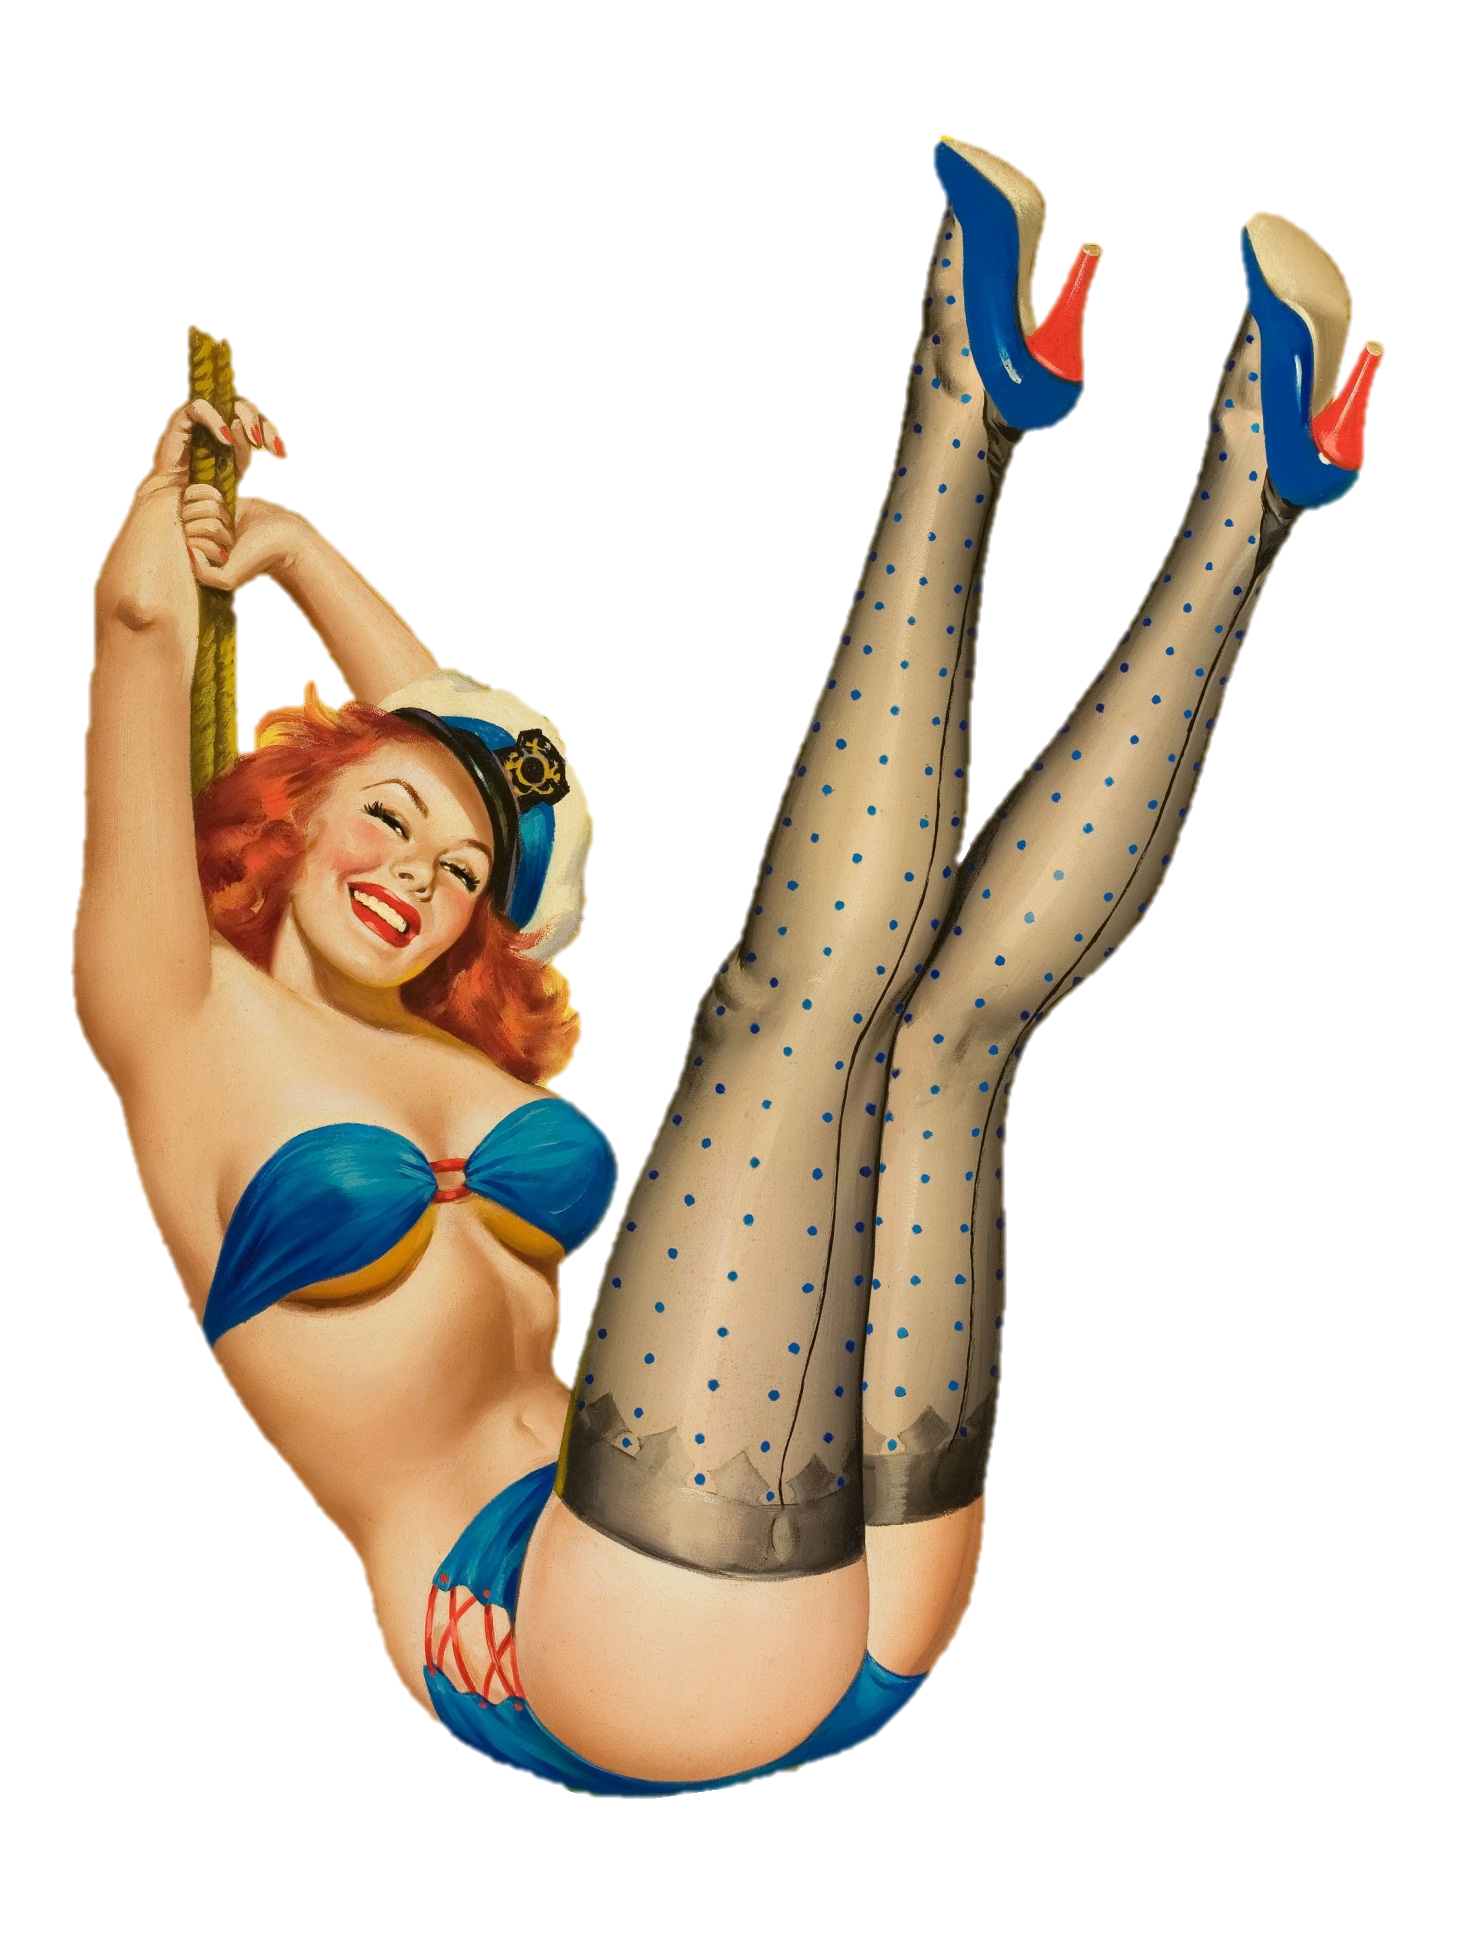 Pin up girl png. File first mate wikimedia